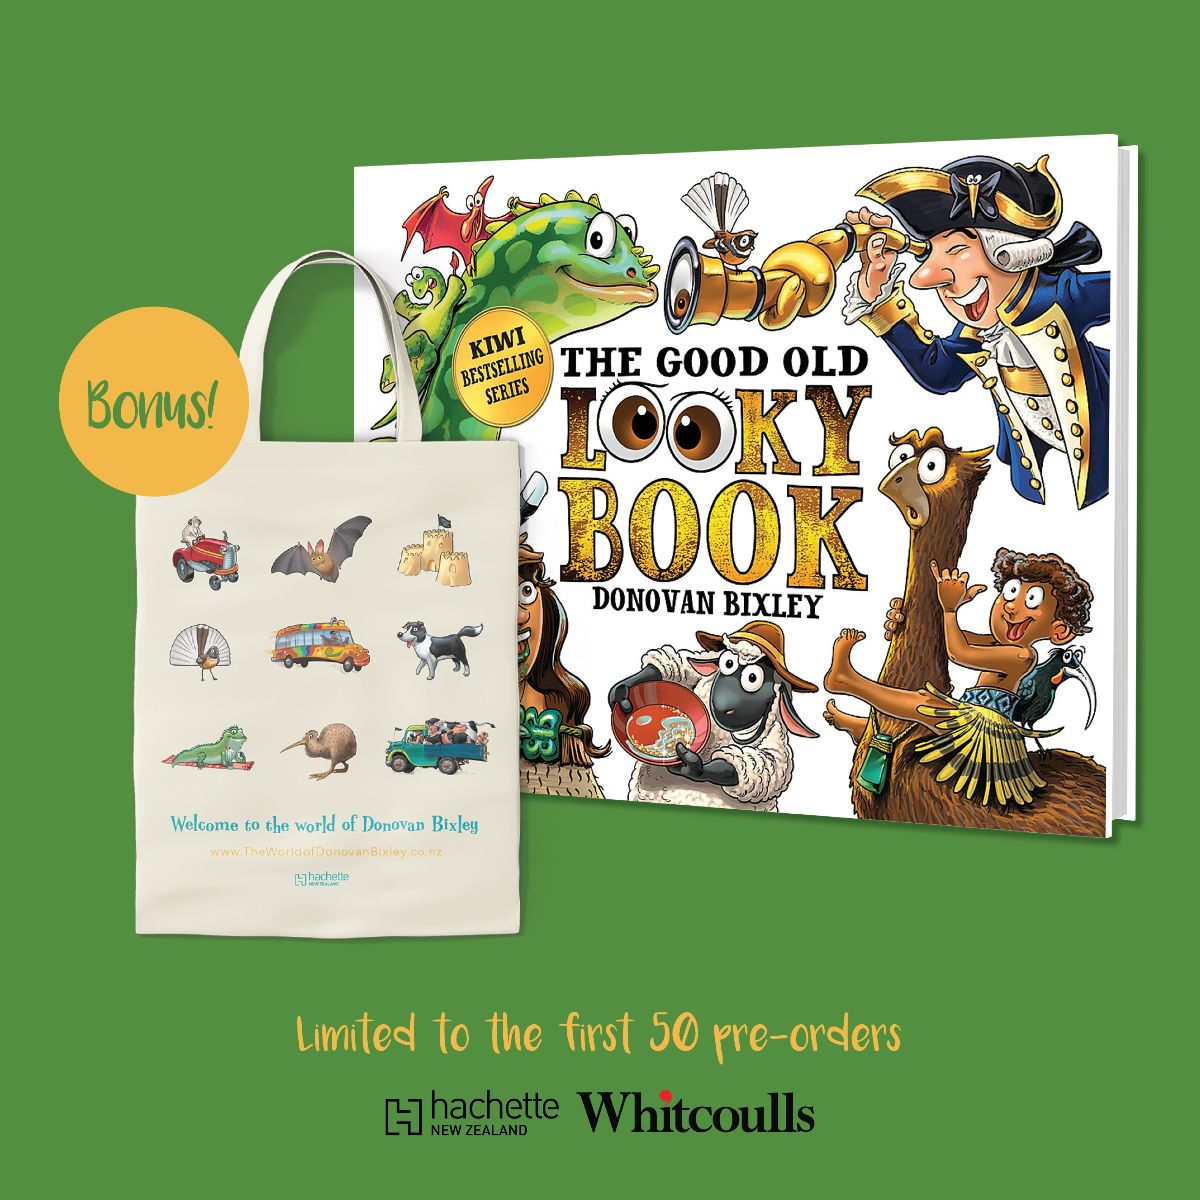 THE GOOD OLD LOOKY BOOK by Donovan Bixley Author/Illustrator is available for pre-order now. And get in quick: the first 50 pre-orders online at Whitcoulls will receive a free tote bag! https://t.co/KWVZlaozQA https://t.co/bPkI51oFkX